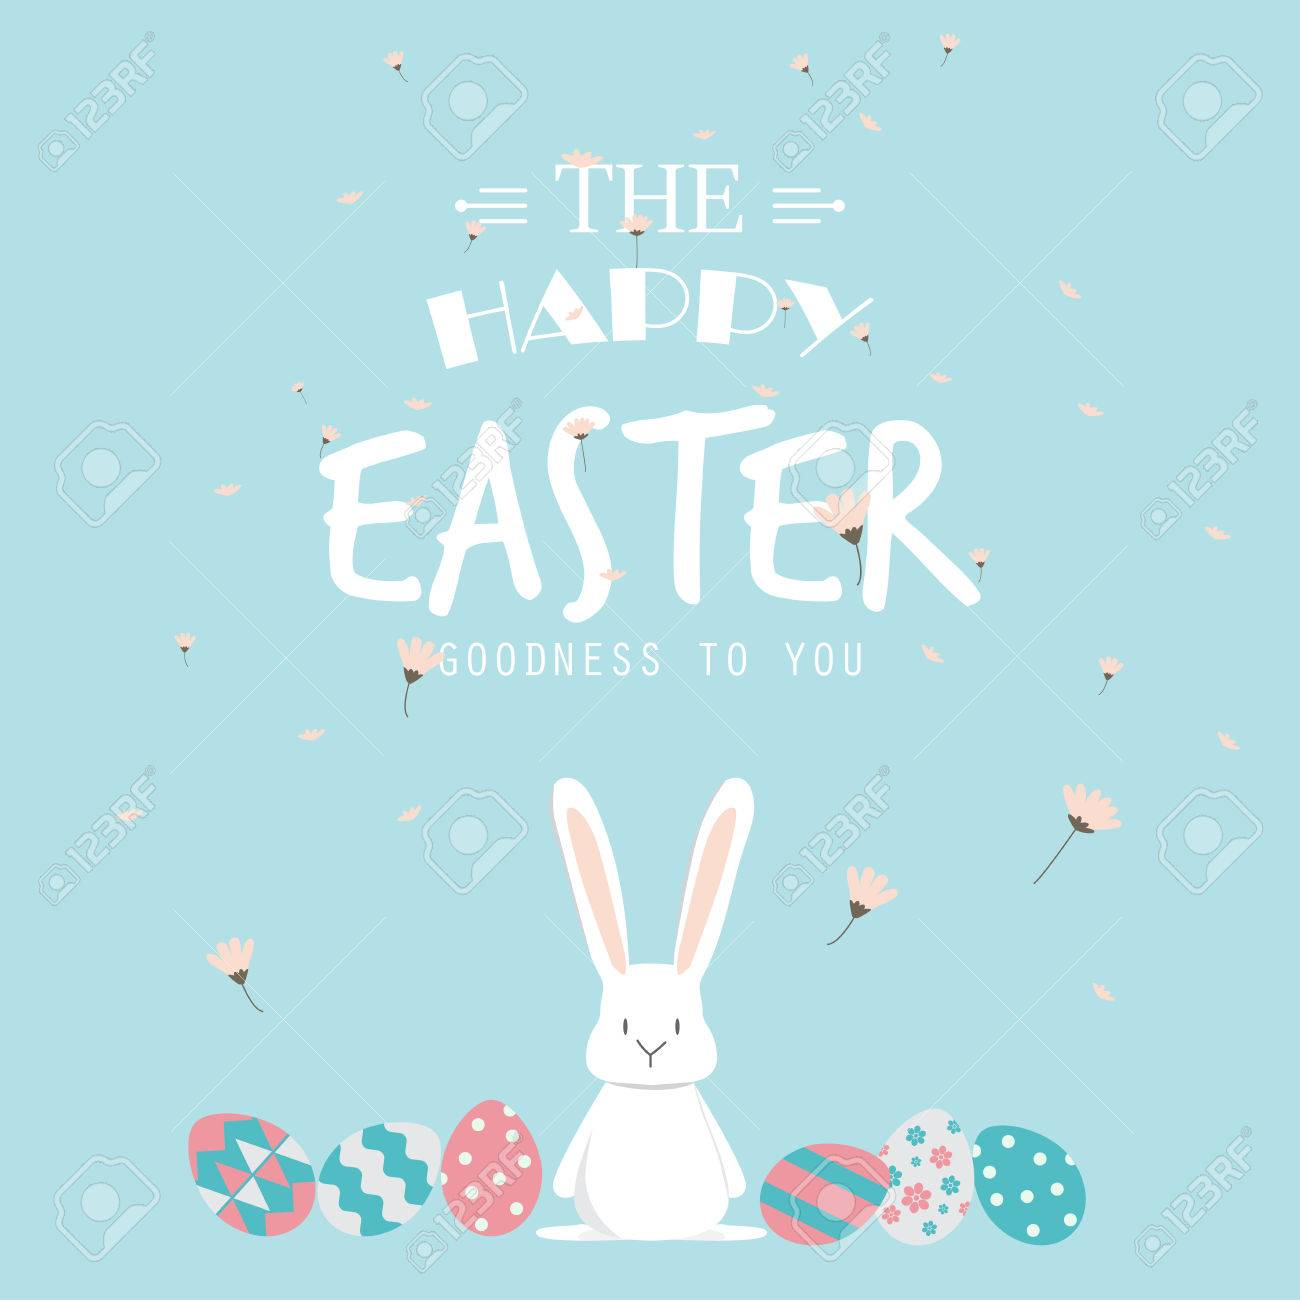 Happy easter day. cute bunny Ears with eggs and text logo on sweet blue background, can be use for greeting card, text can be added. vector illustration - 53611177